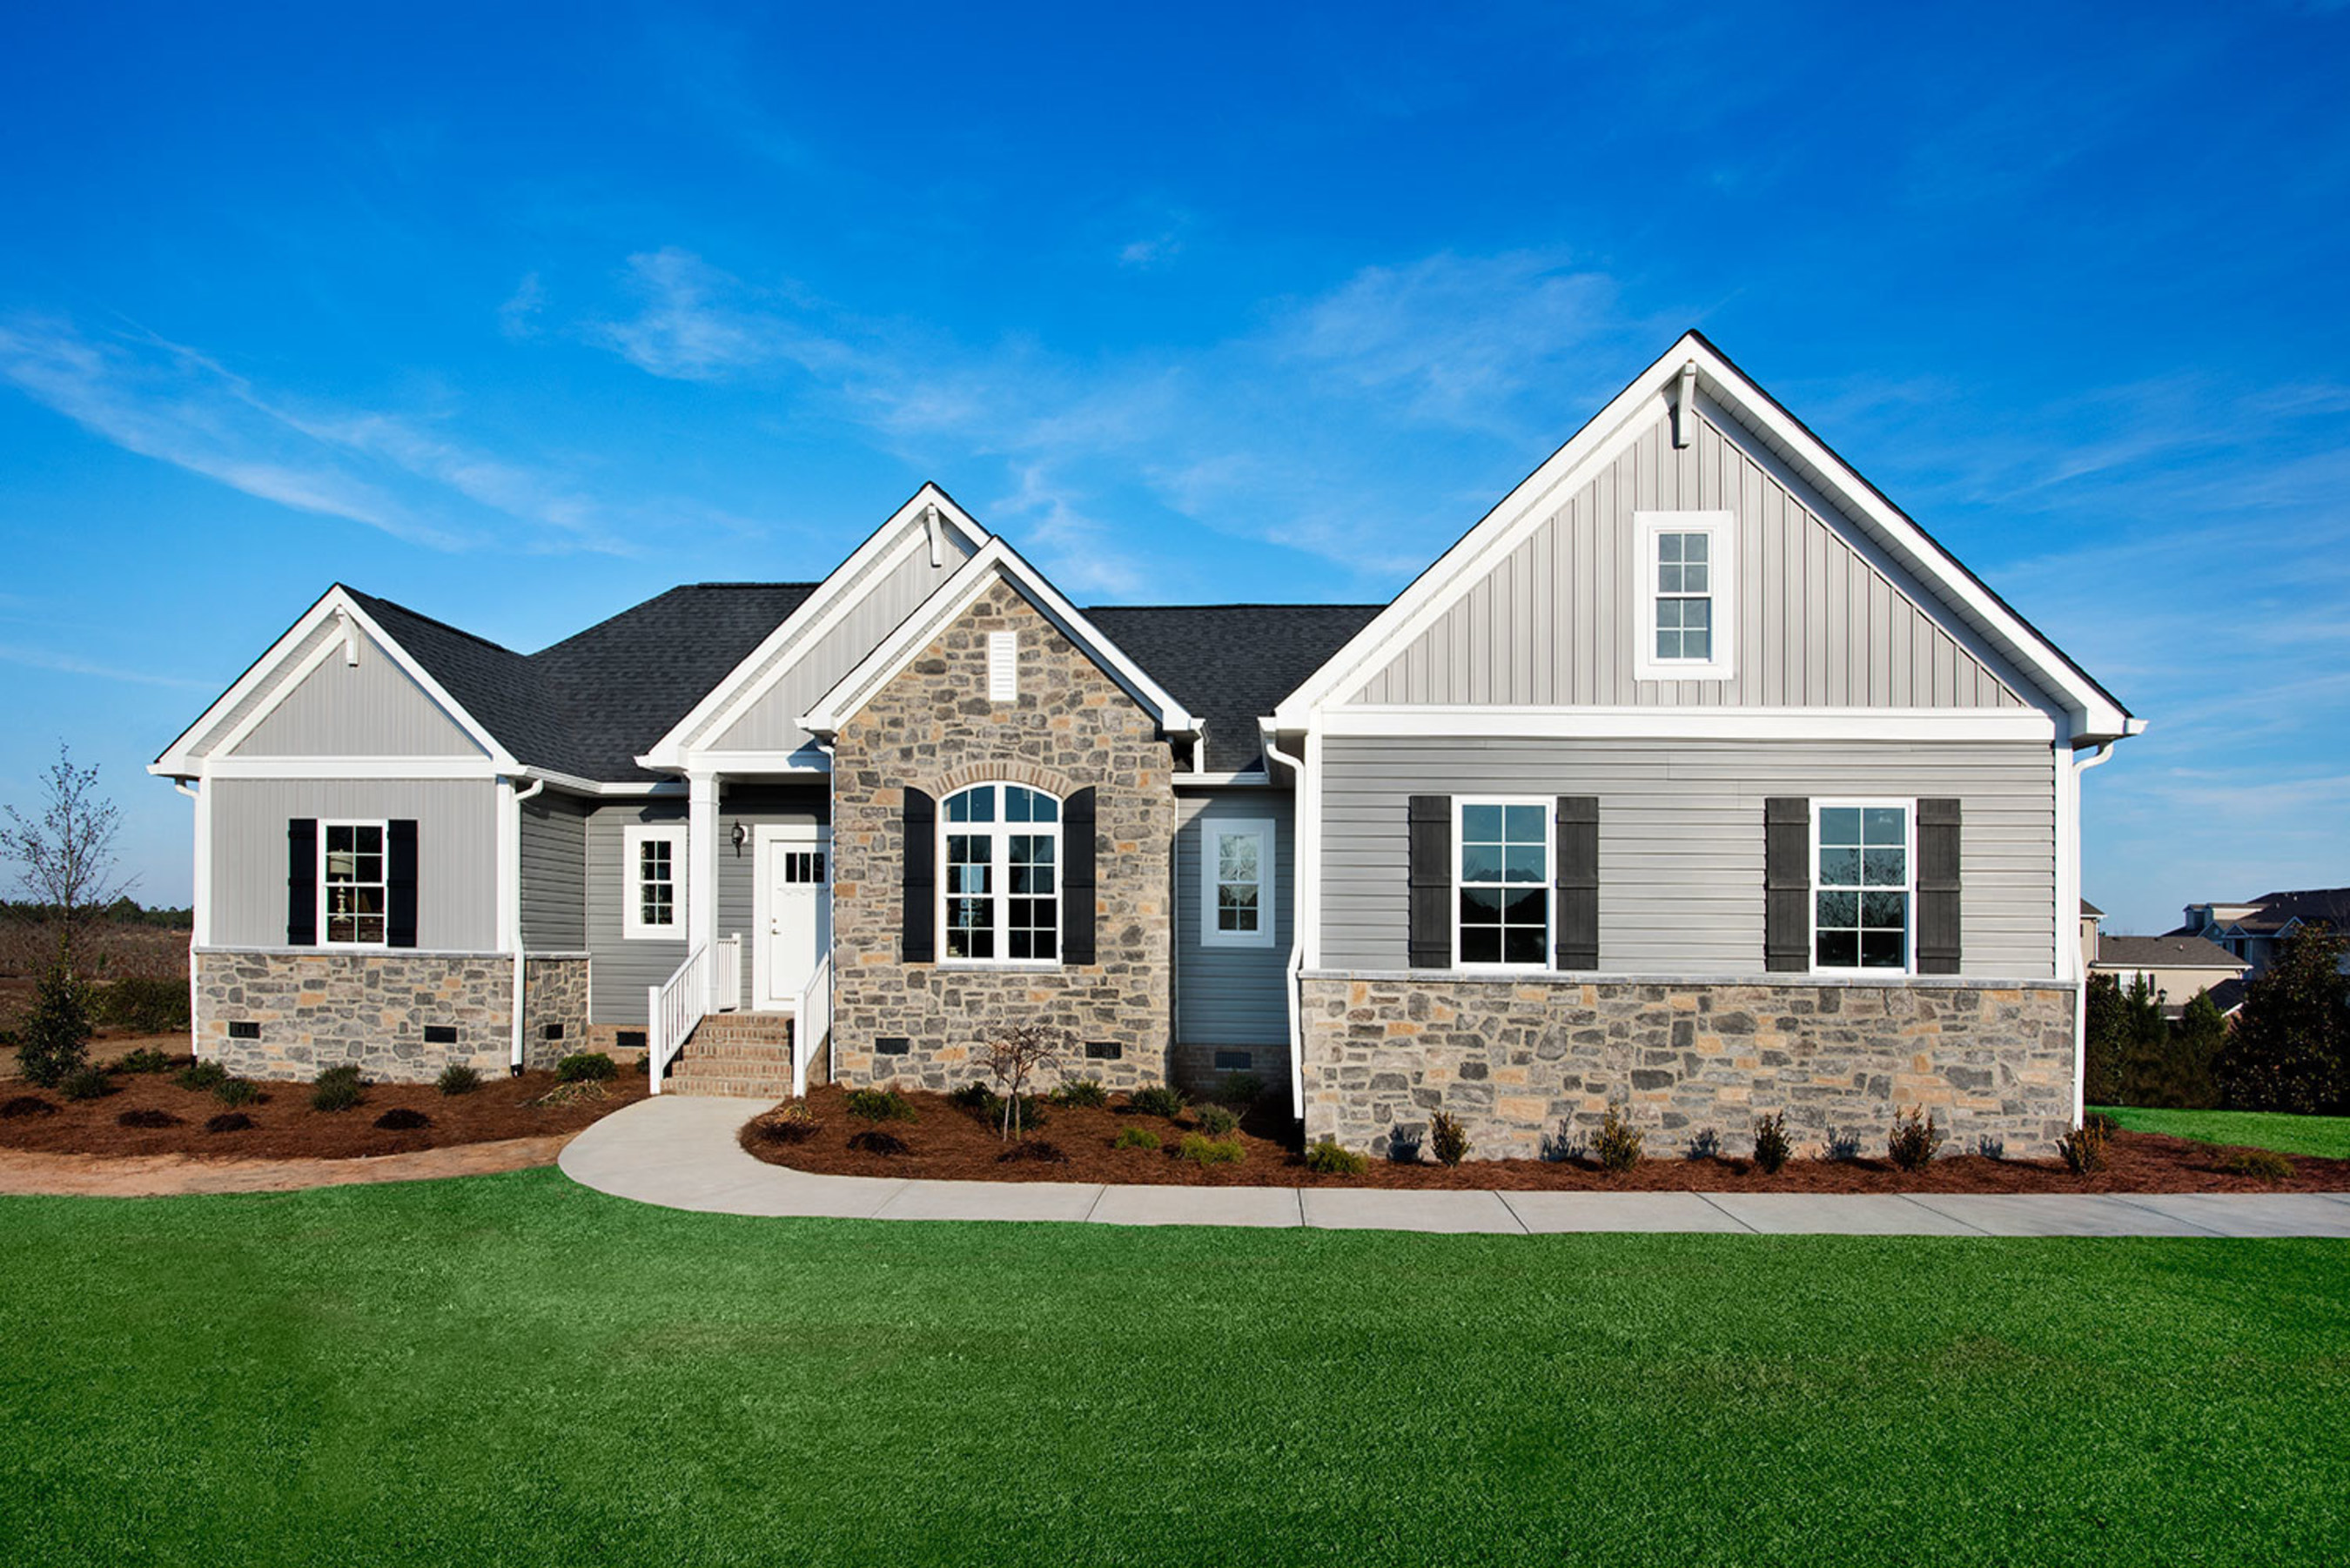 Custom Home Builder Schumacher Homes Opens Exciting New Model Home